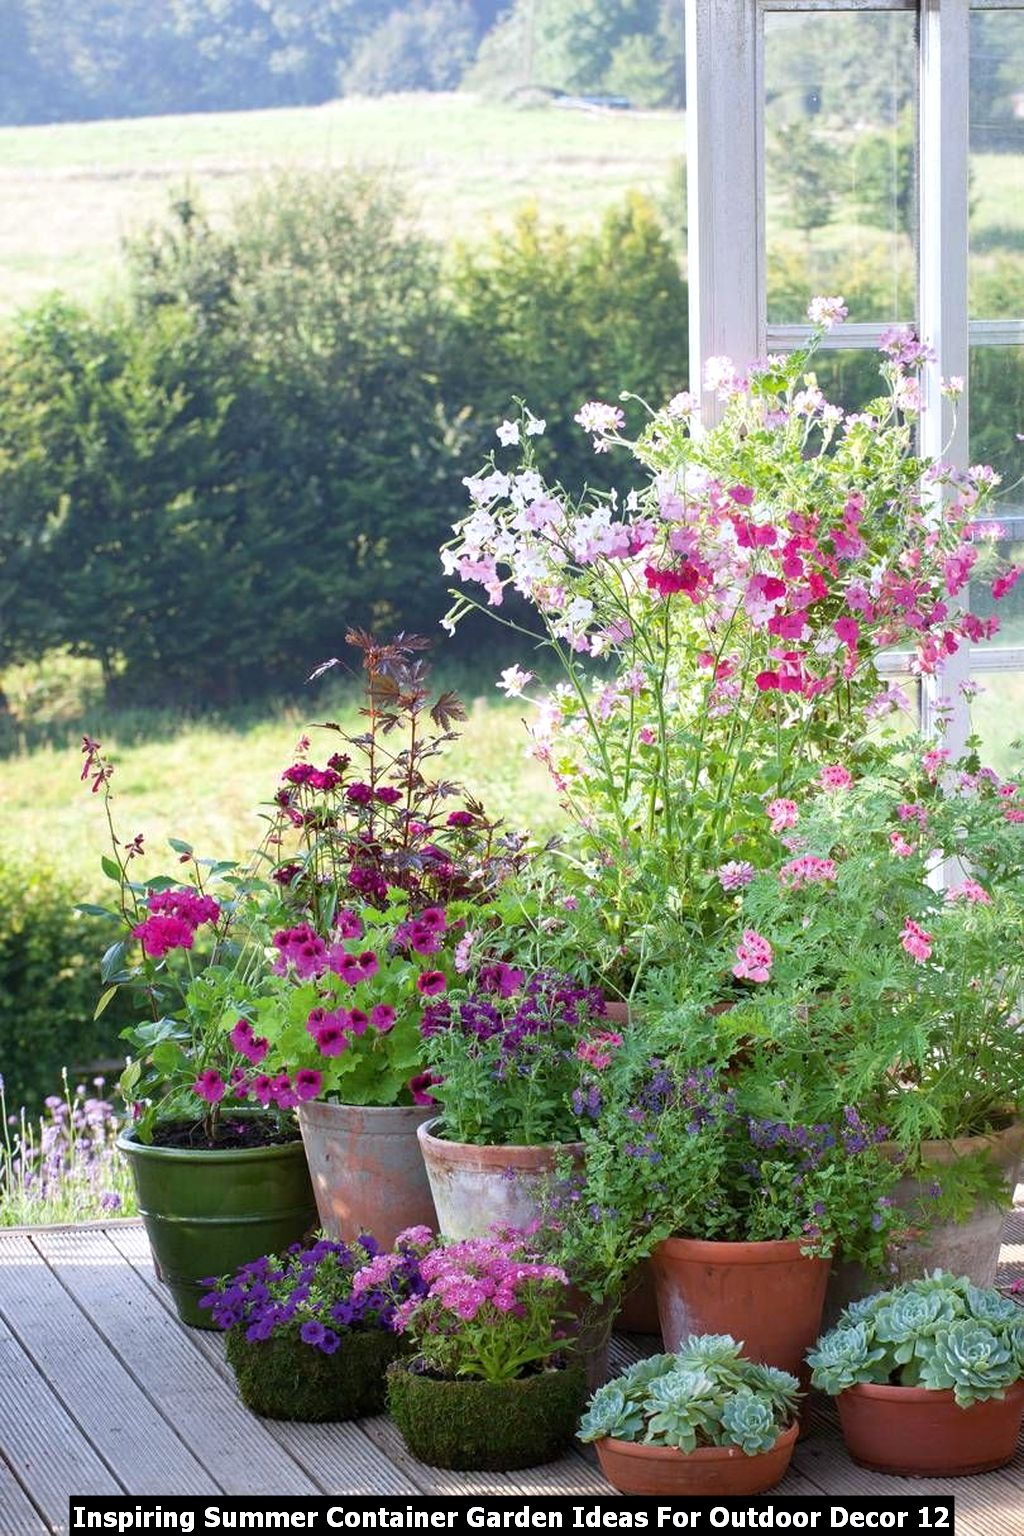 Inspiring Summer Container Garden Ideas For Outdoor Decor 12